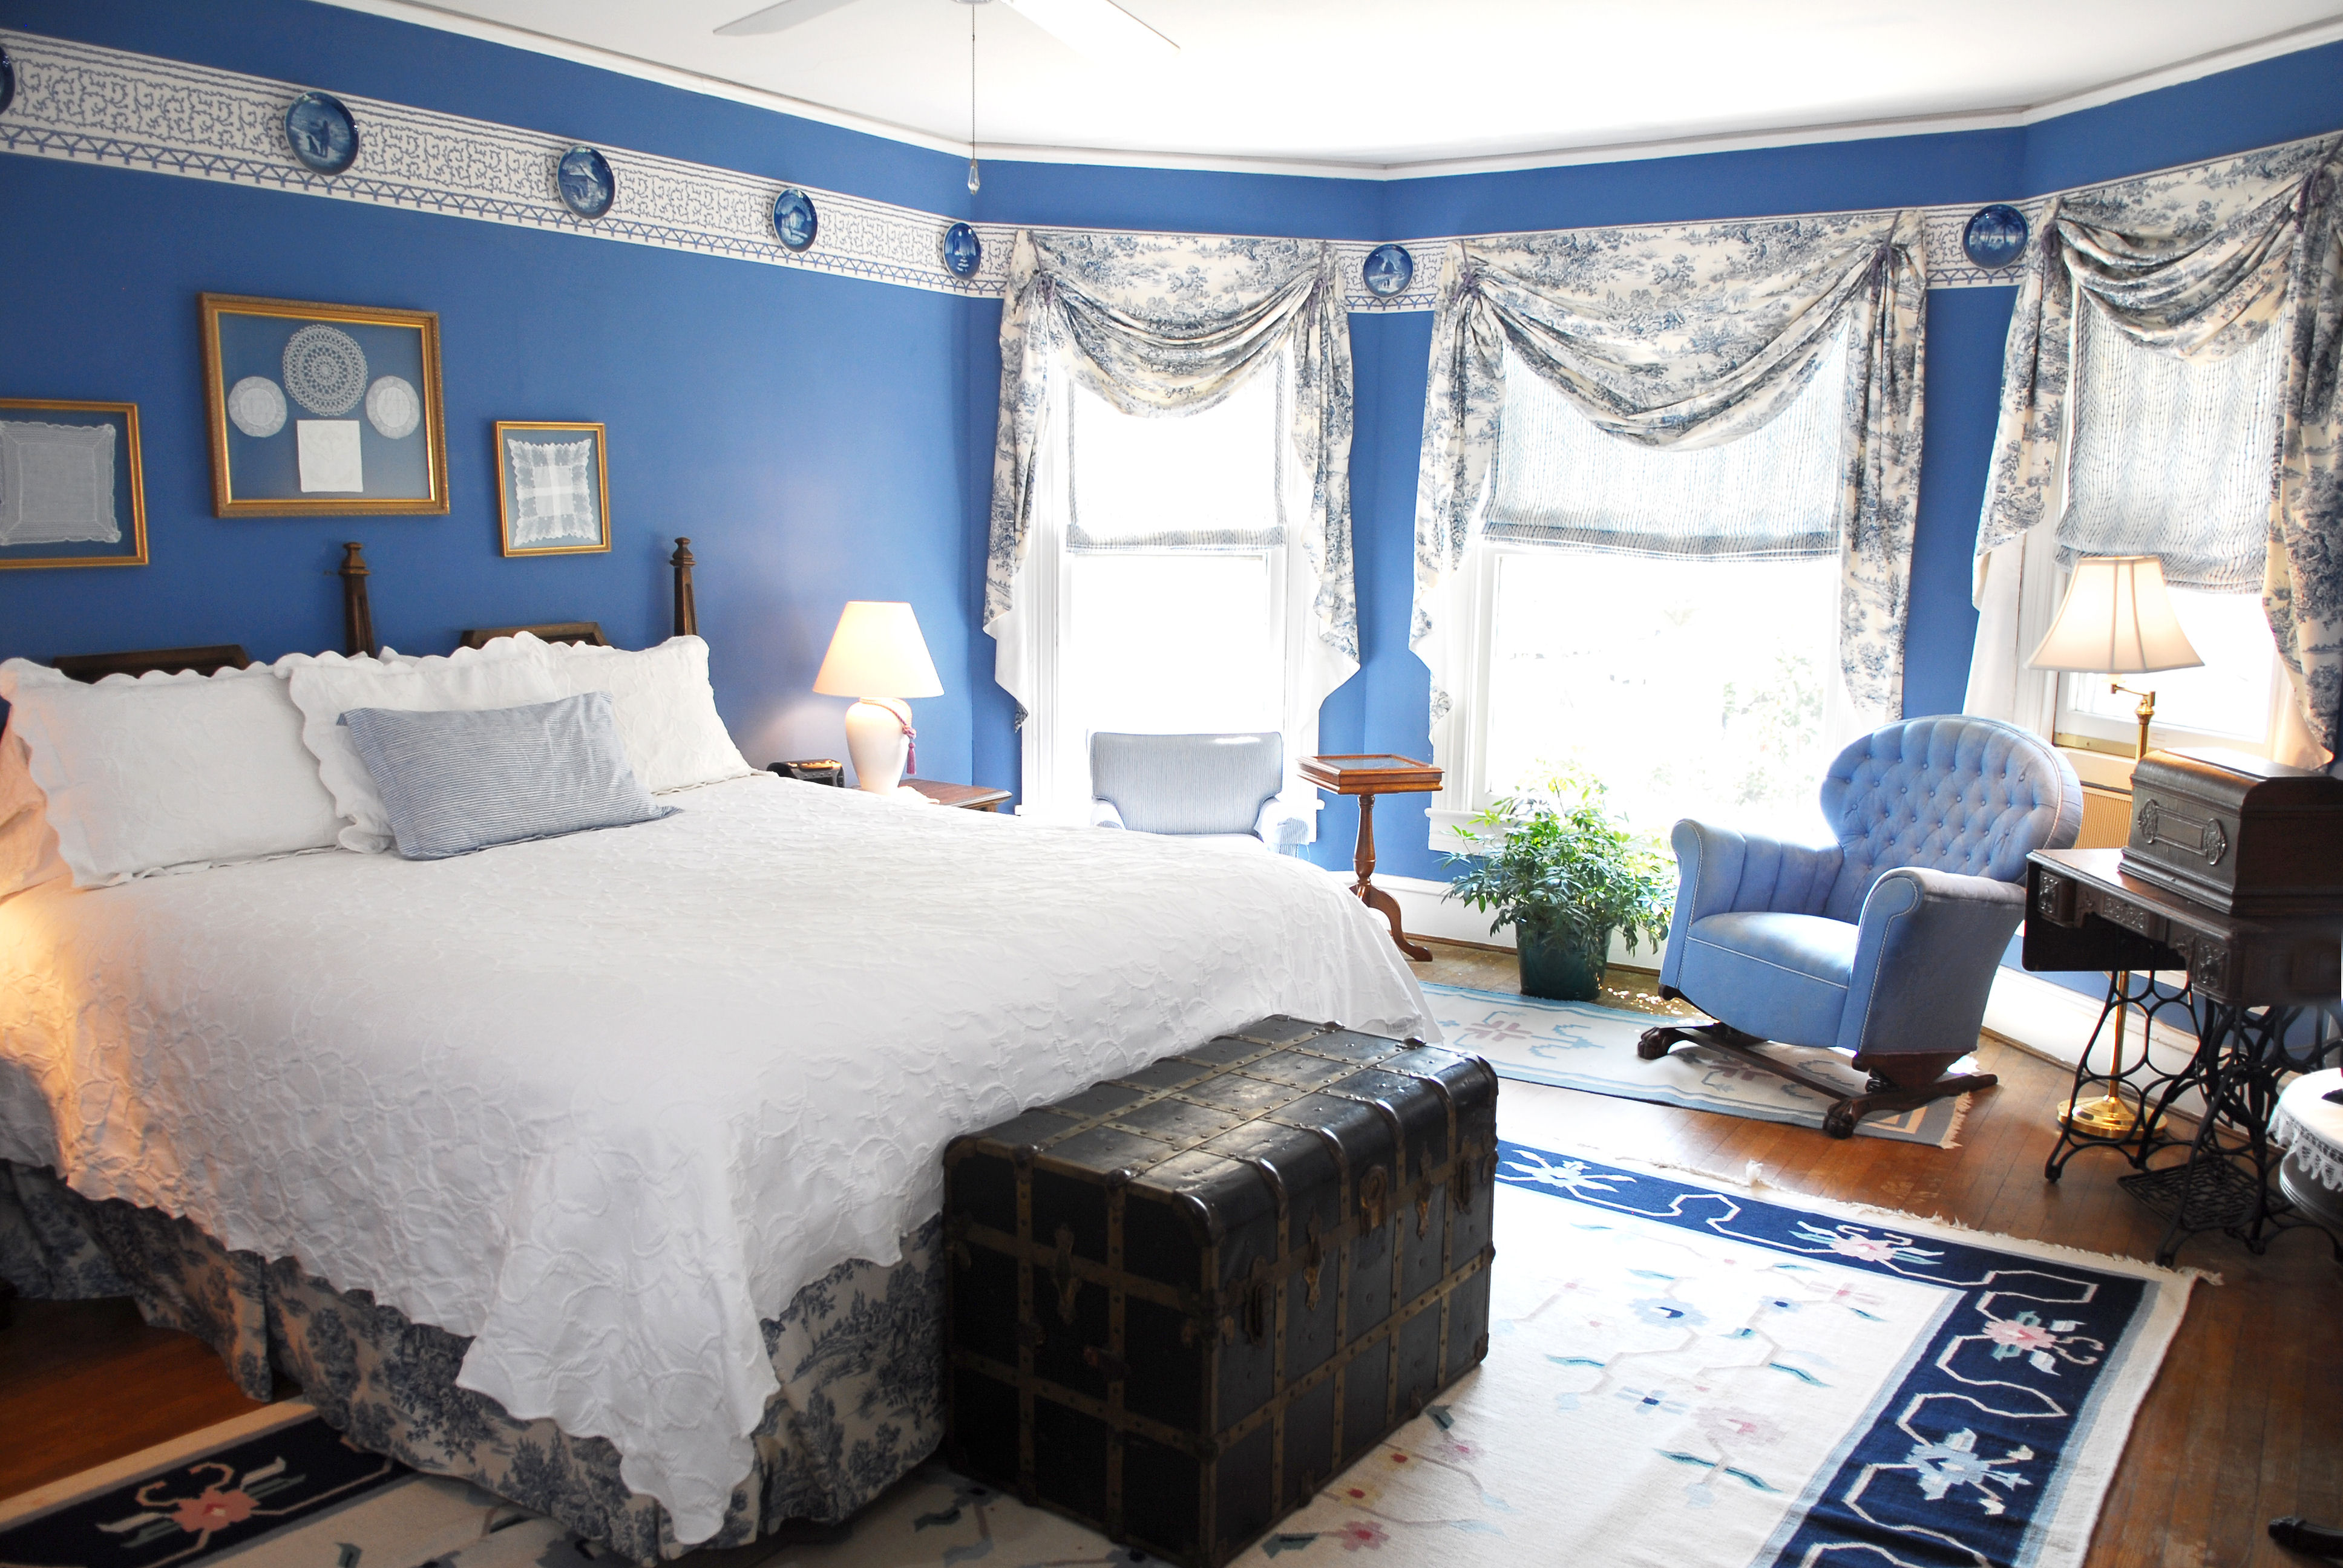 Pictures Of Blue Bedrooms Chesapeake Bay Real Estate Life And Real Estate On The